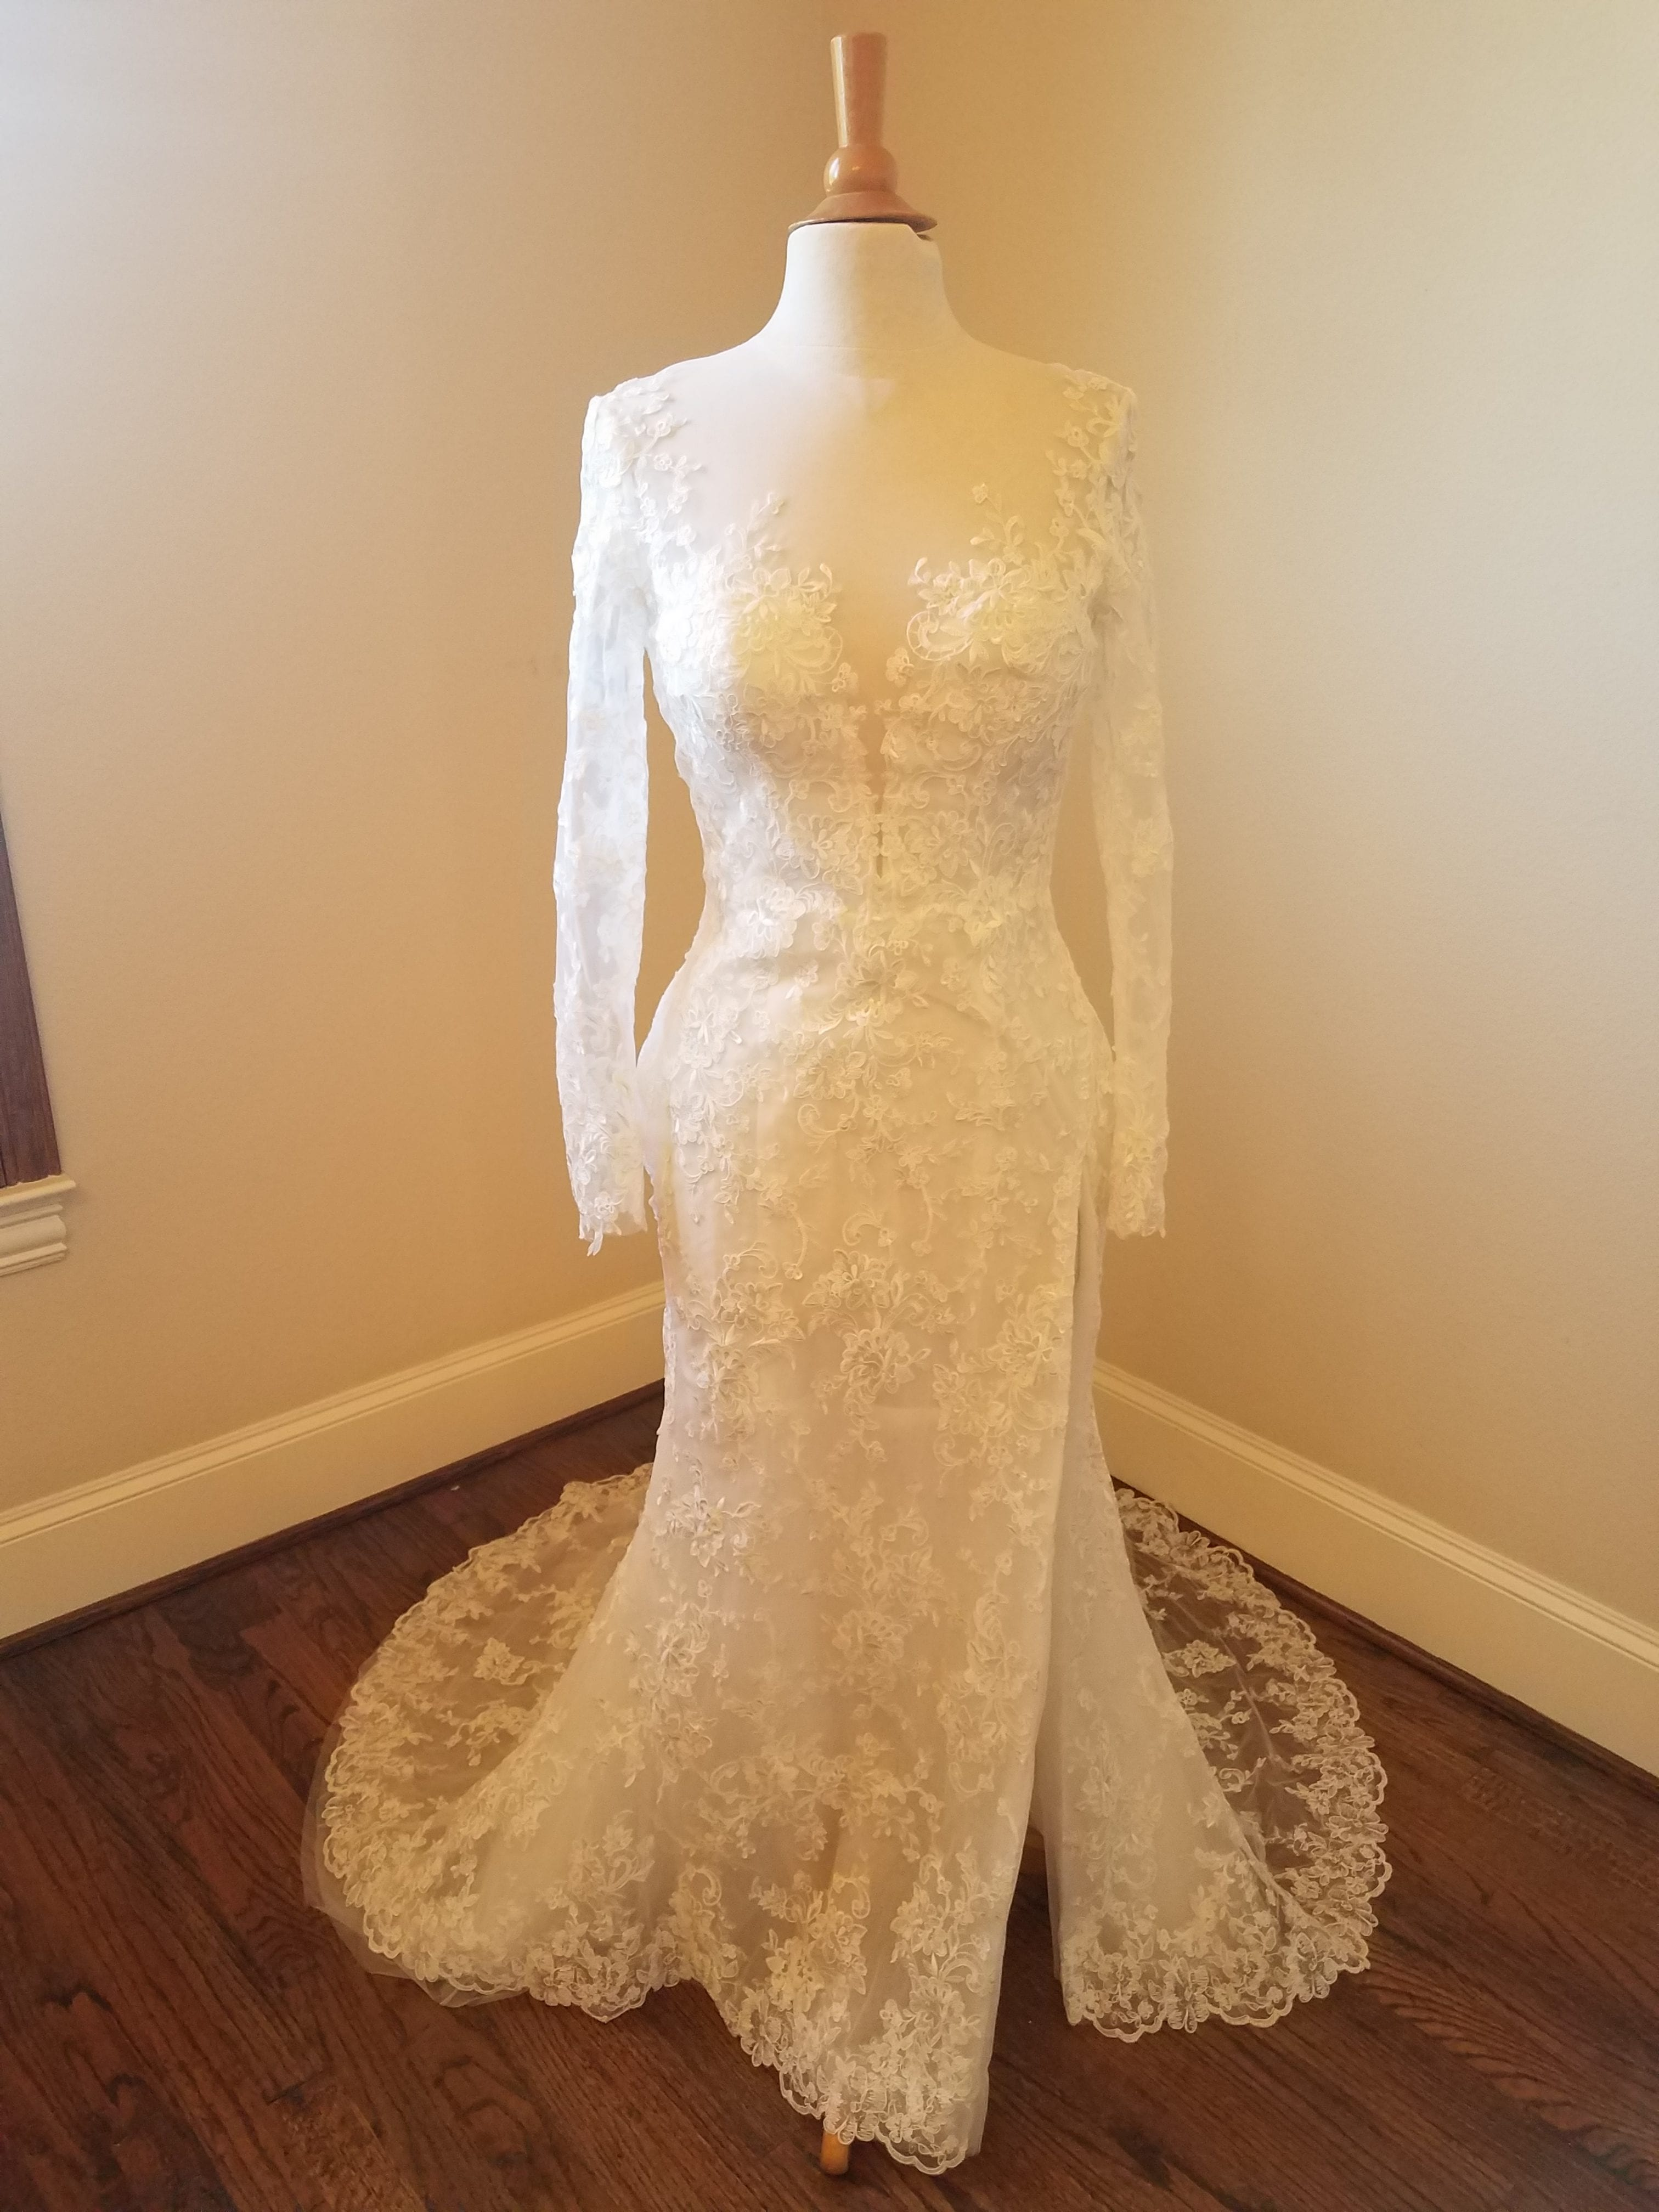 Illusion neckline long sleeve lace wedding dress by Darius